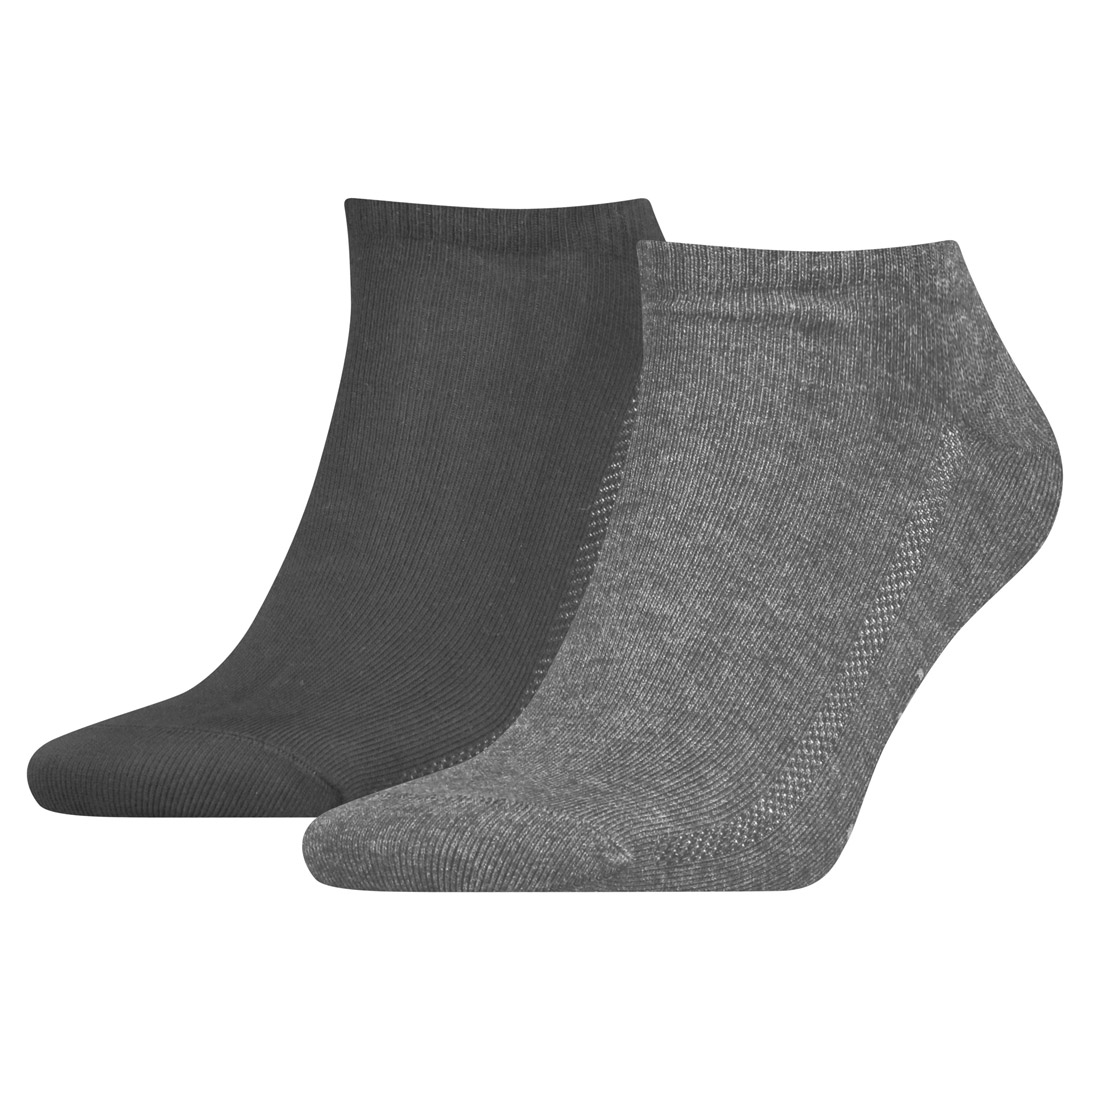 2 Paar Levis Unisex Socken 168SF Low Cut Sneakersocken Kurzsocken 758 - middle grey mélange, 39-42 von Levi's